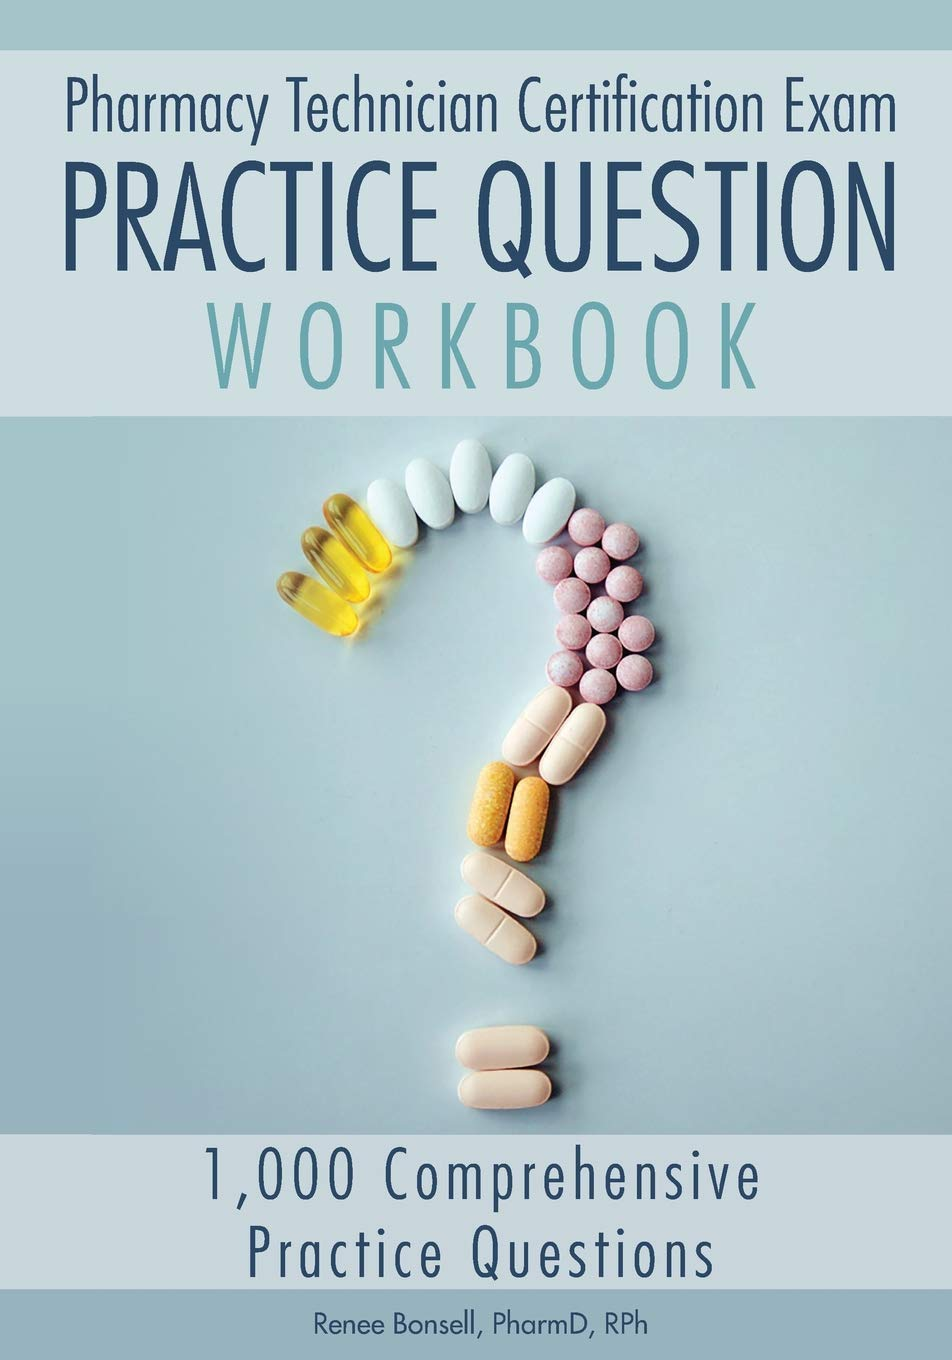 Pharmacy Technician Certification Exam Practice Question Workbook 1